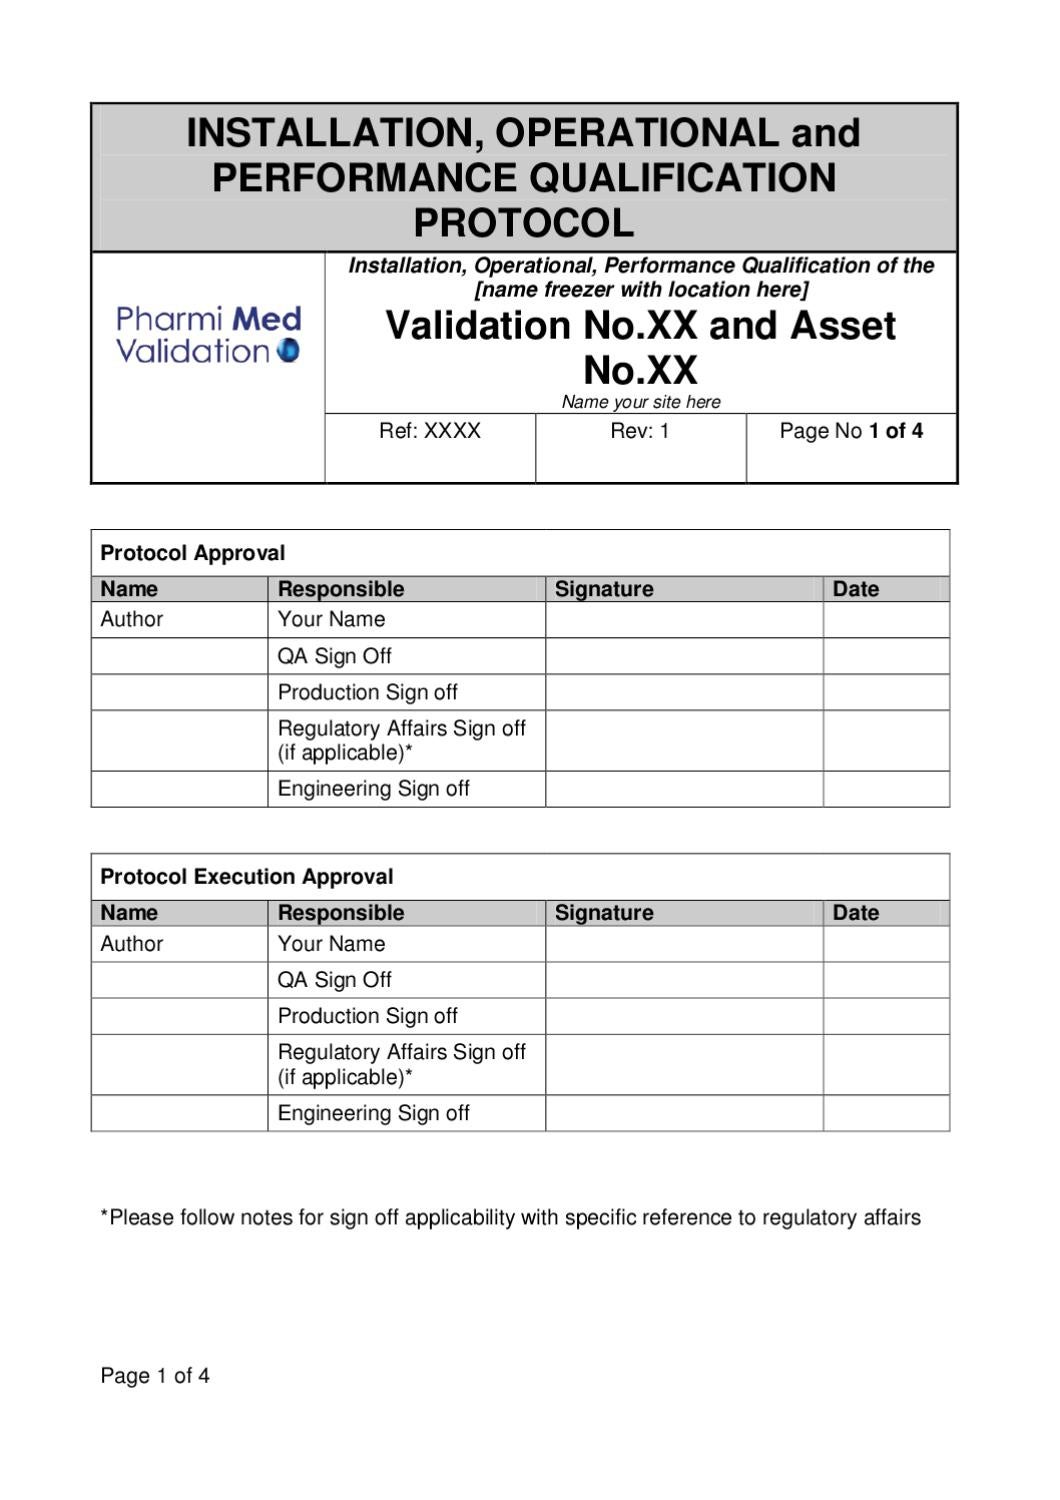 iq oq pq validation templates - iopq freezer validation template sample by pharmi med